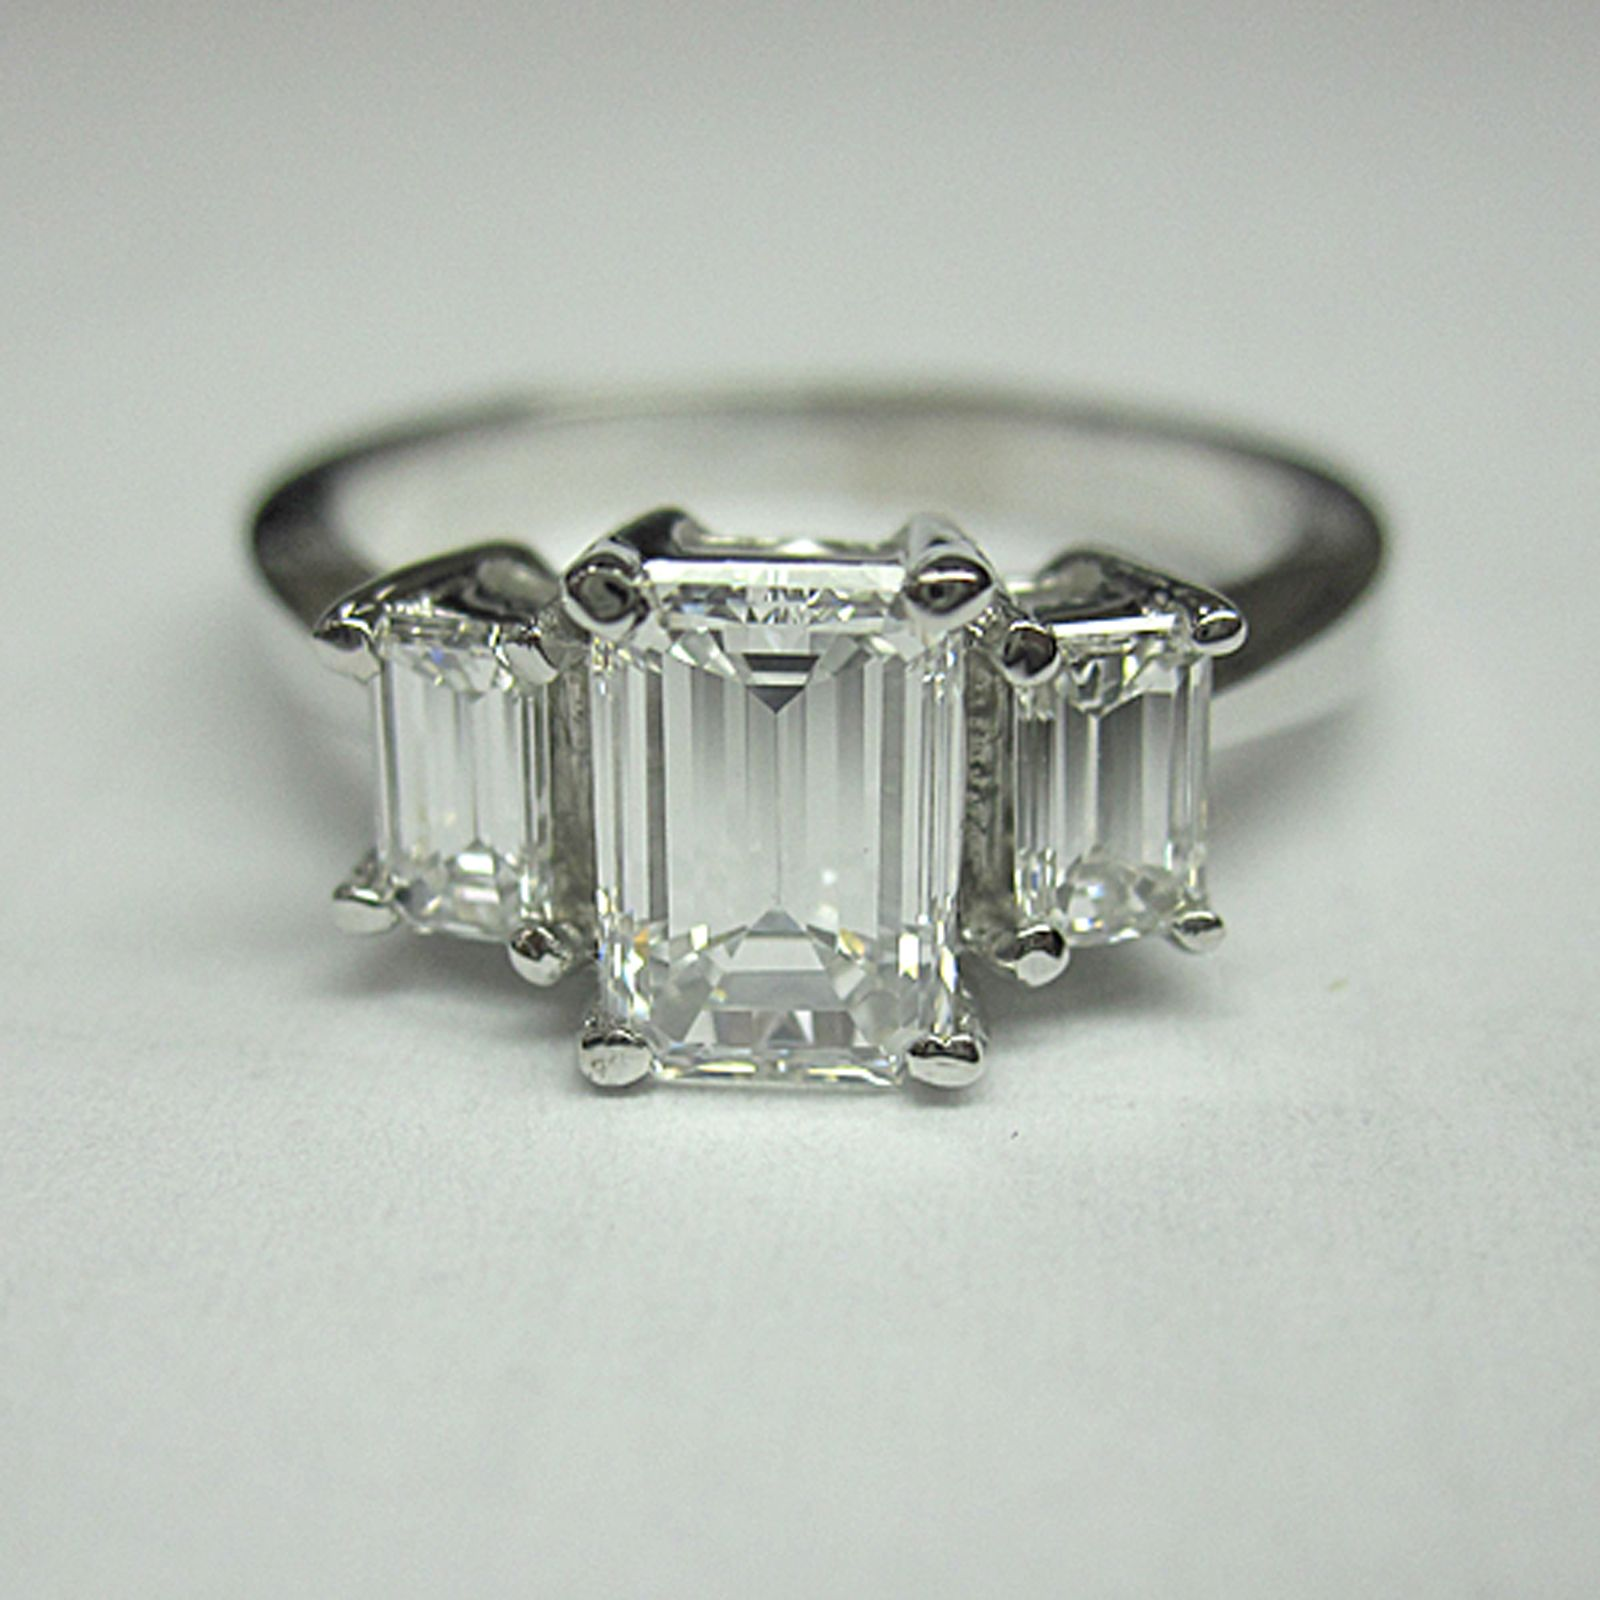 emerald cut 3 stone man made | Diamond Bridal Engagement Wedding Ring 14k  White Gold 18K